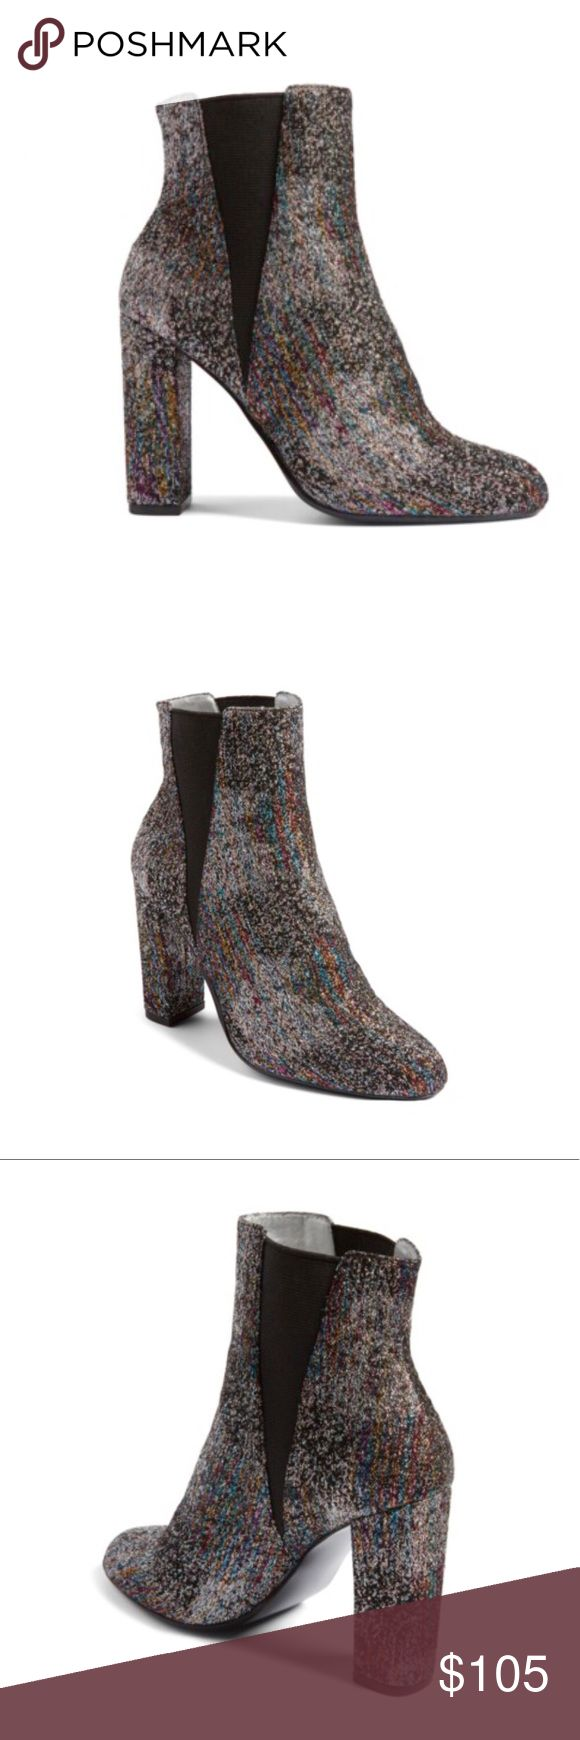 """Steve Madden Bootie Details -Heel Style:Block/Chunky -4"""" heel -Pull-on style -Leather or textile upper/synthetic lining and sole  FREE SHIPPING OFFER AGREEING TO PAY THE FULL PRICE.   REASONABLE OFFER ARE WELCOME.  NO TRADES. Steve Madden Shoes Ankle Boots & Booties"""